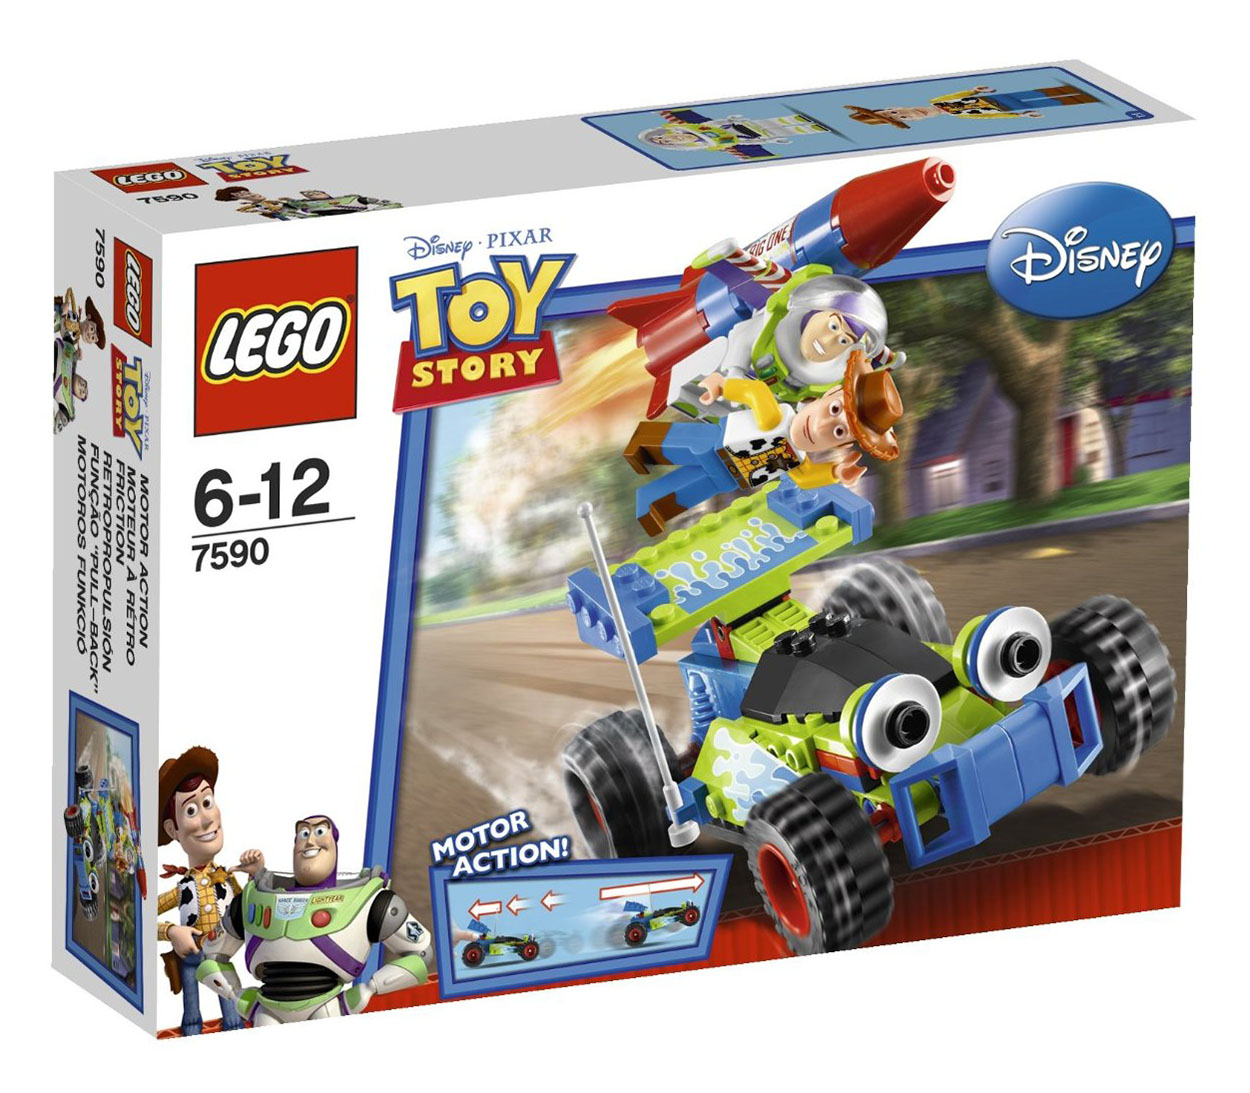 World Of Buzz: LEGO Toy Story 7590 Pas Cher, La Course En Voiture De Buzz